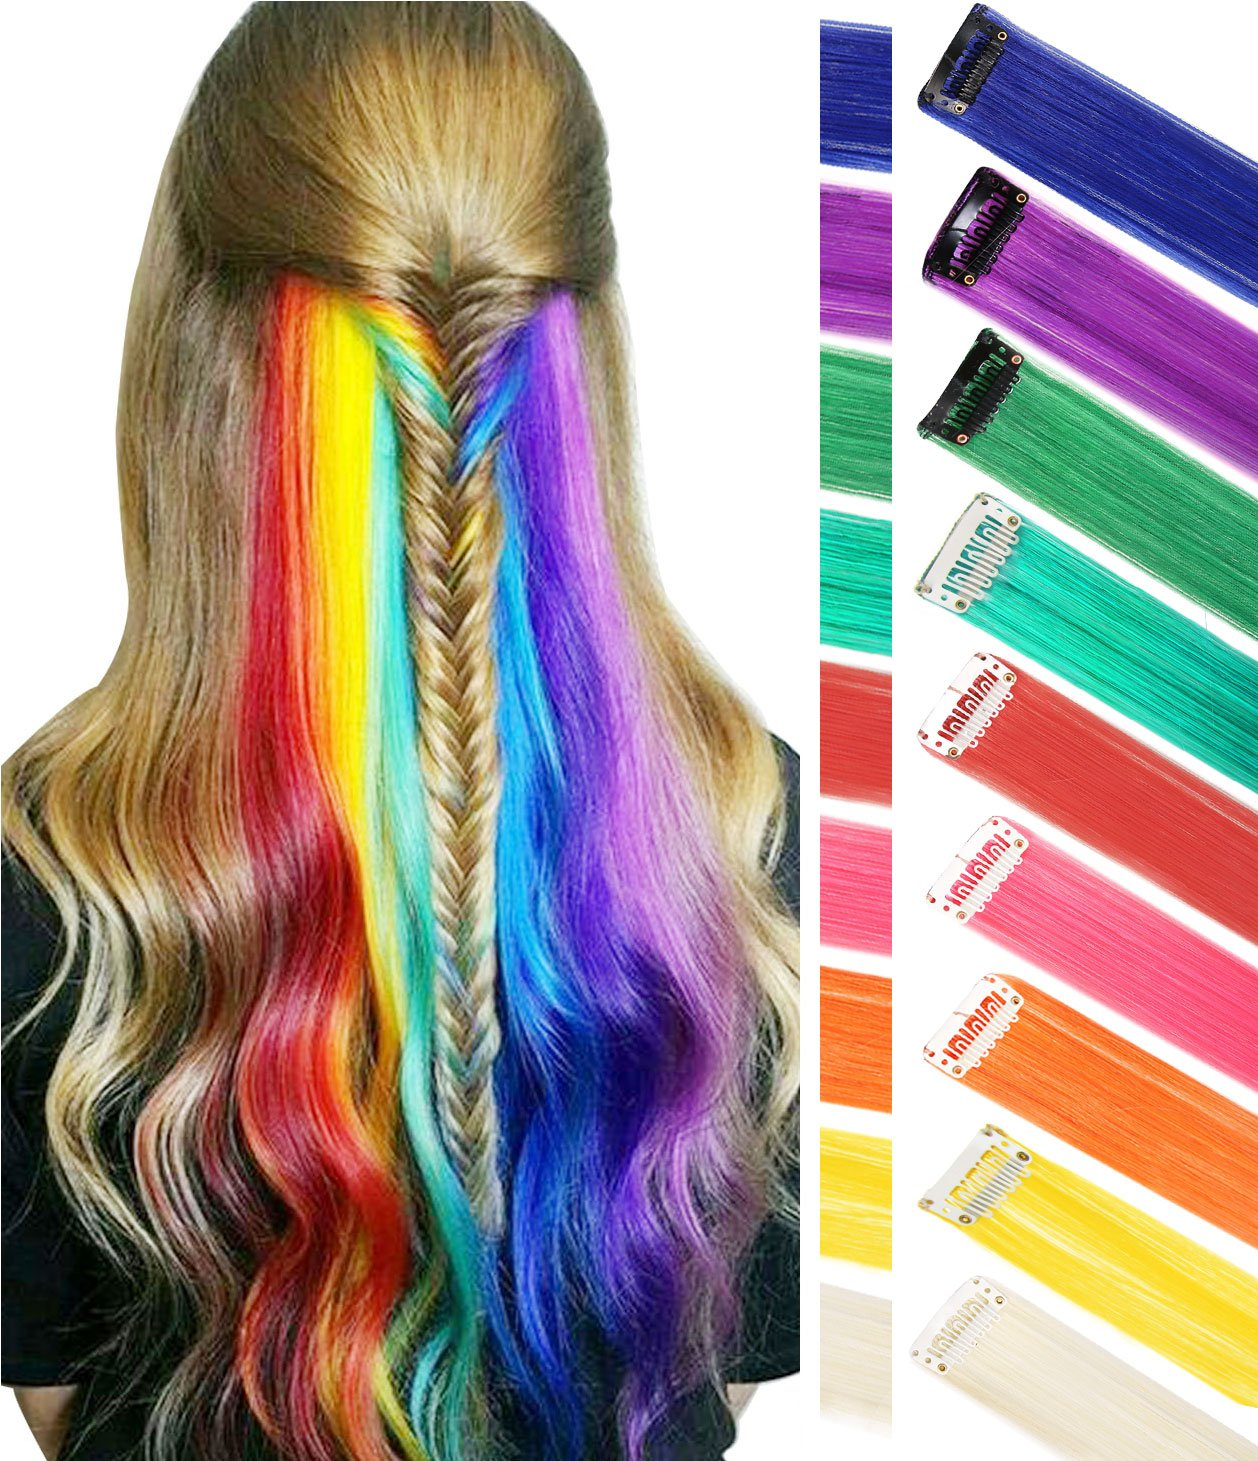 Fashion Girls Hair Accessories Clip In/On Colored Hair Extension For Amercian Girls And Dolls Rainbow Color Wig Pieces for kids Party Hihlights 9PCS BINIHA